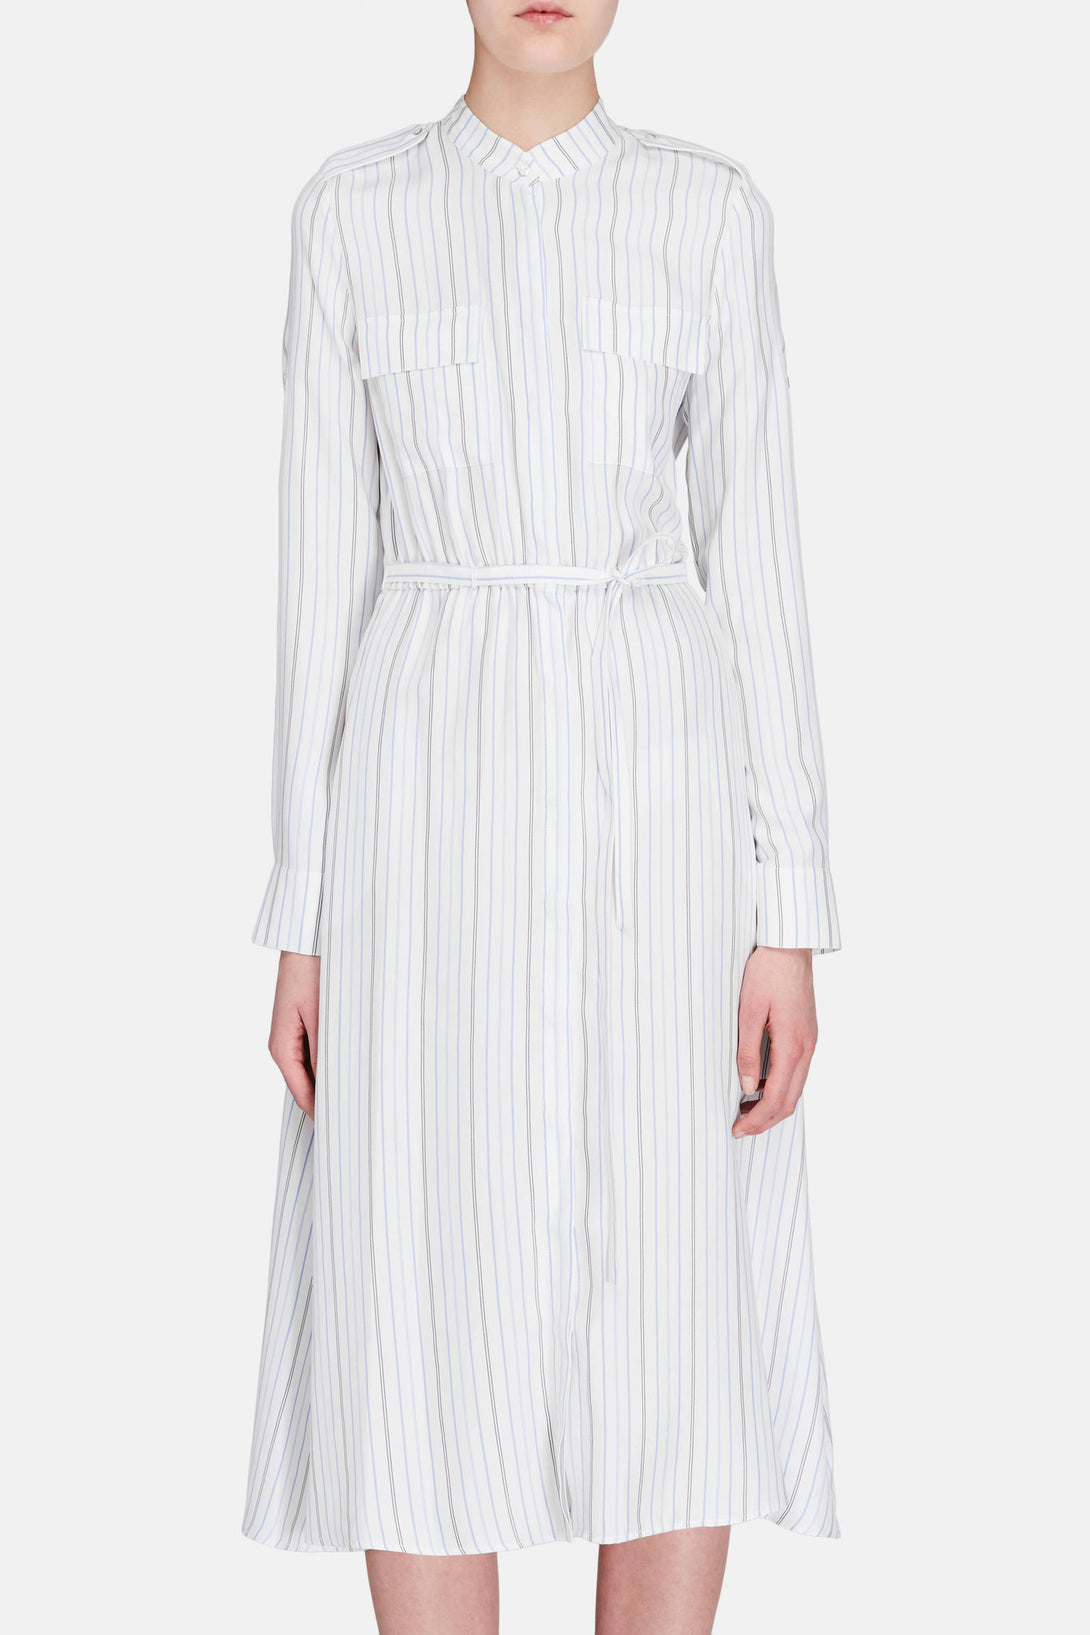 Terrell Dress - Blue Stripe